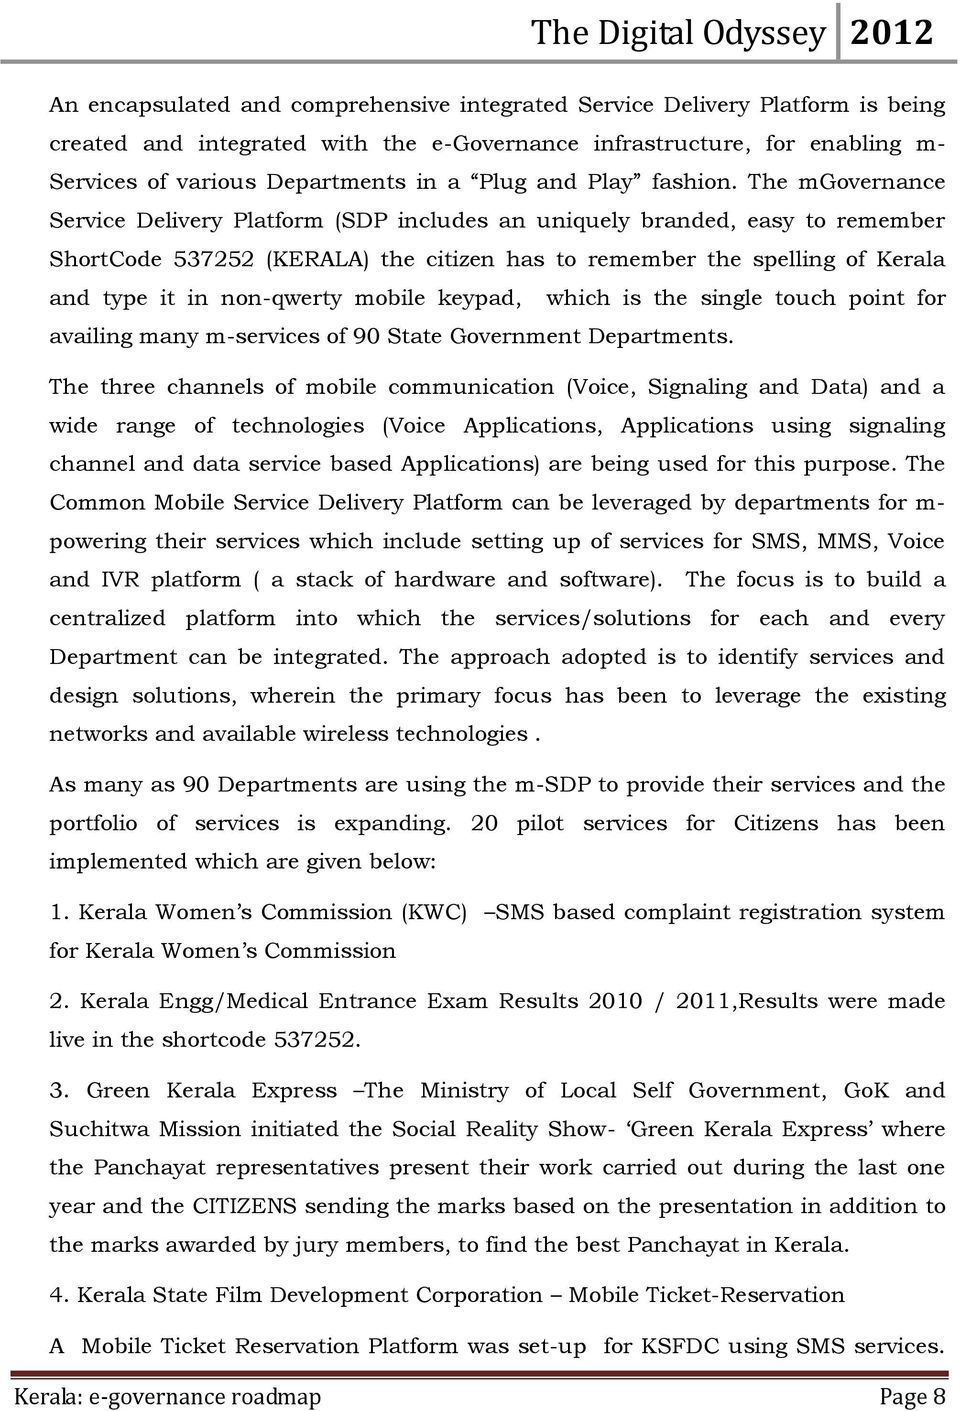 The mgovernance Service Delivery Platform (SDP includes an uniquely branded, easy to remember ShortCode 537252 (KERALA) the citizen has to remember the spelling of Kerala and type it in non-qwerty